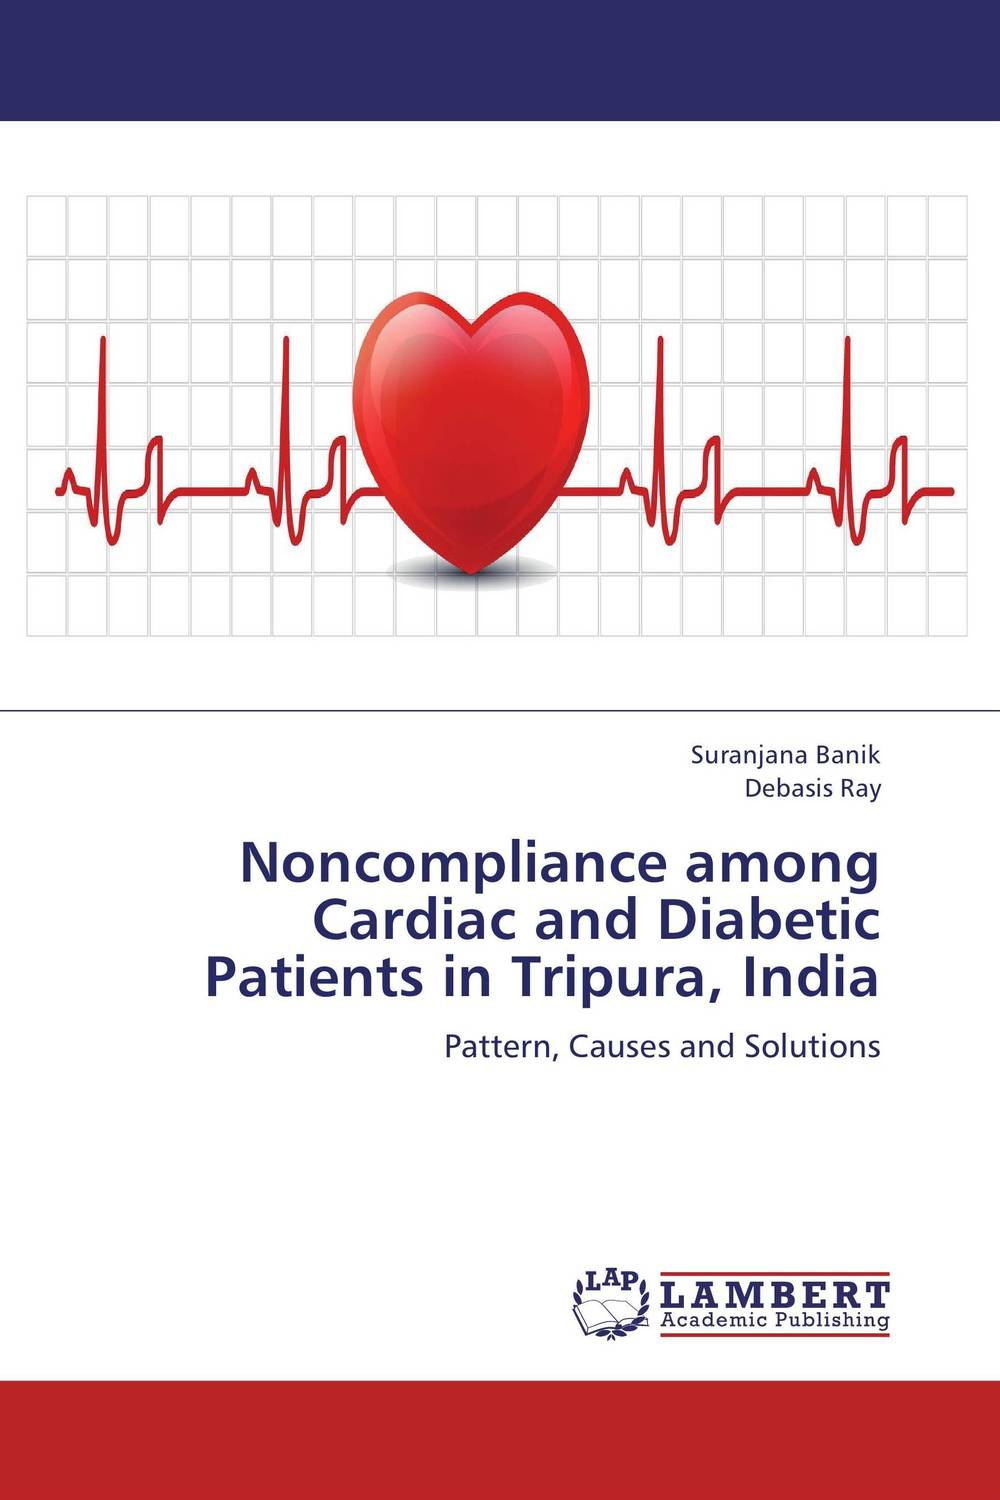 Noncompliance among Cardiac and Diabetic Patients in Tripura, India майка классическая printio sadhus of india